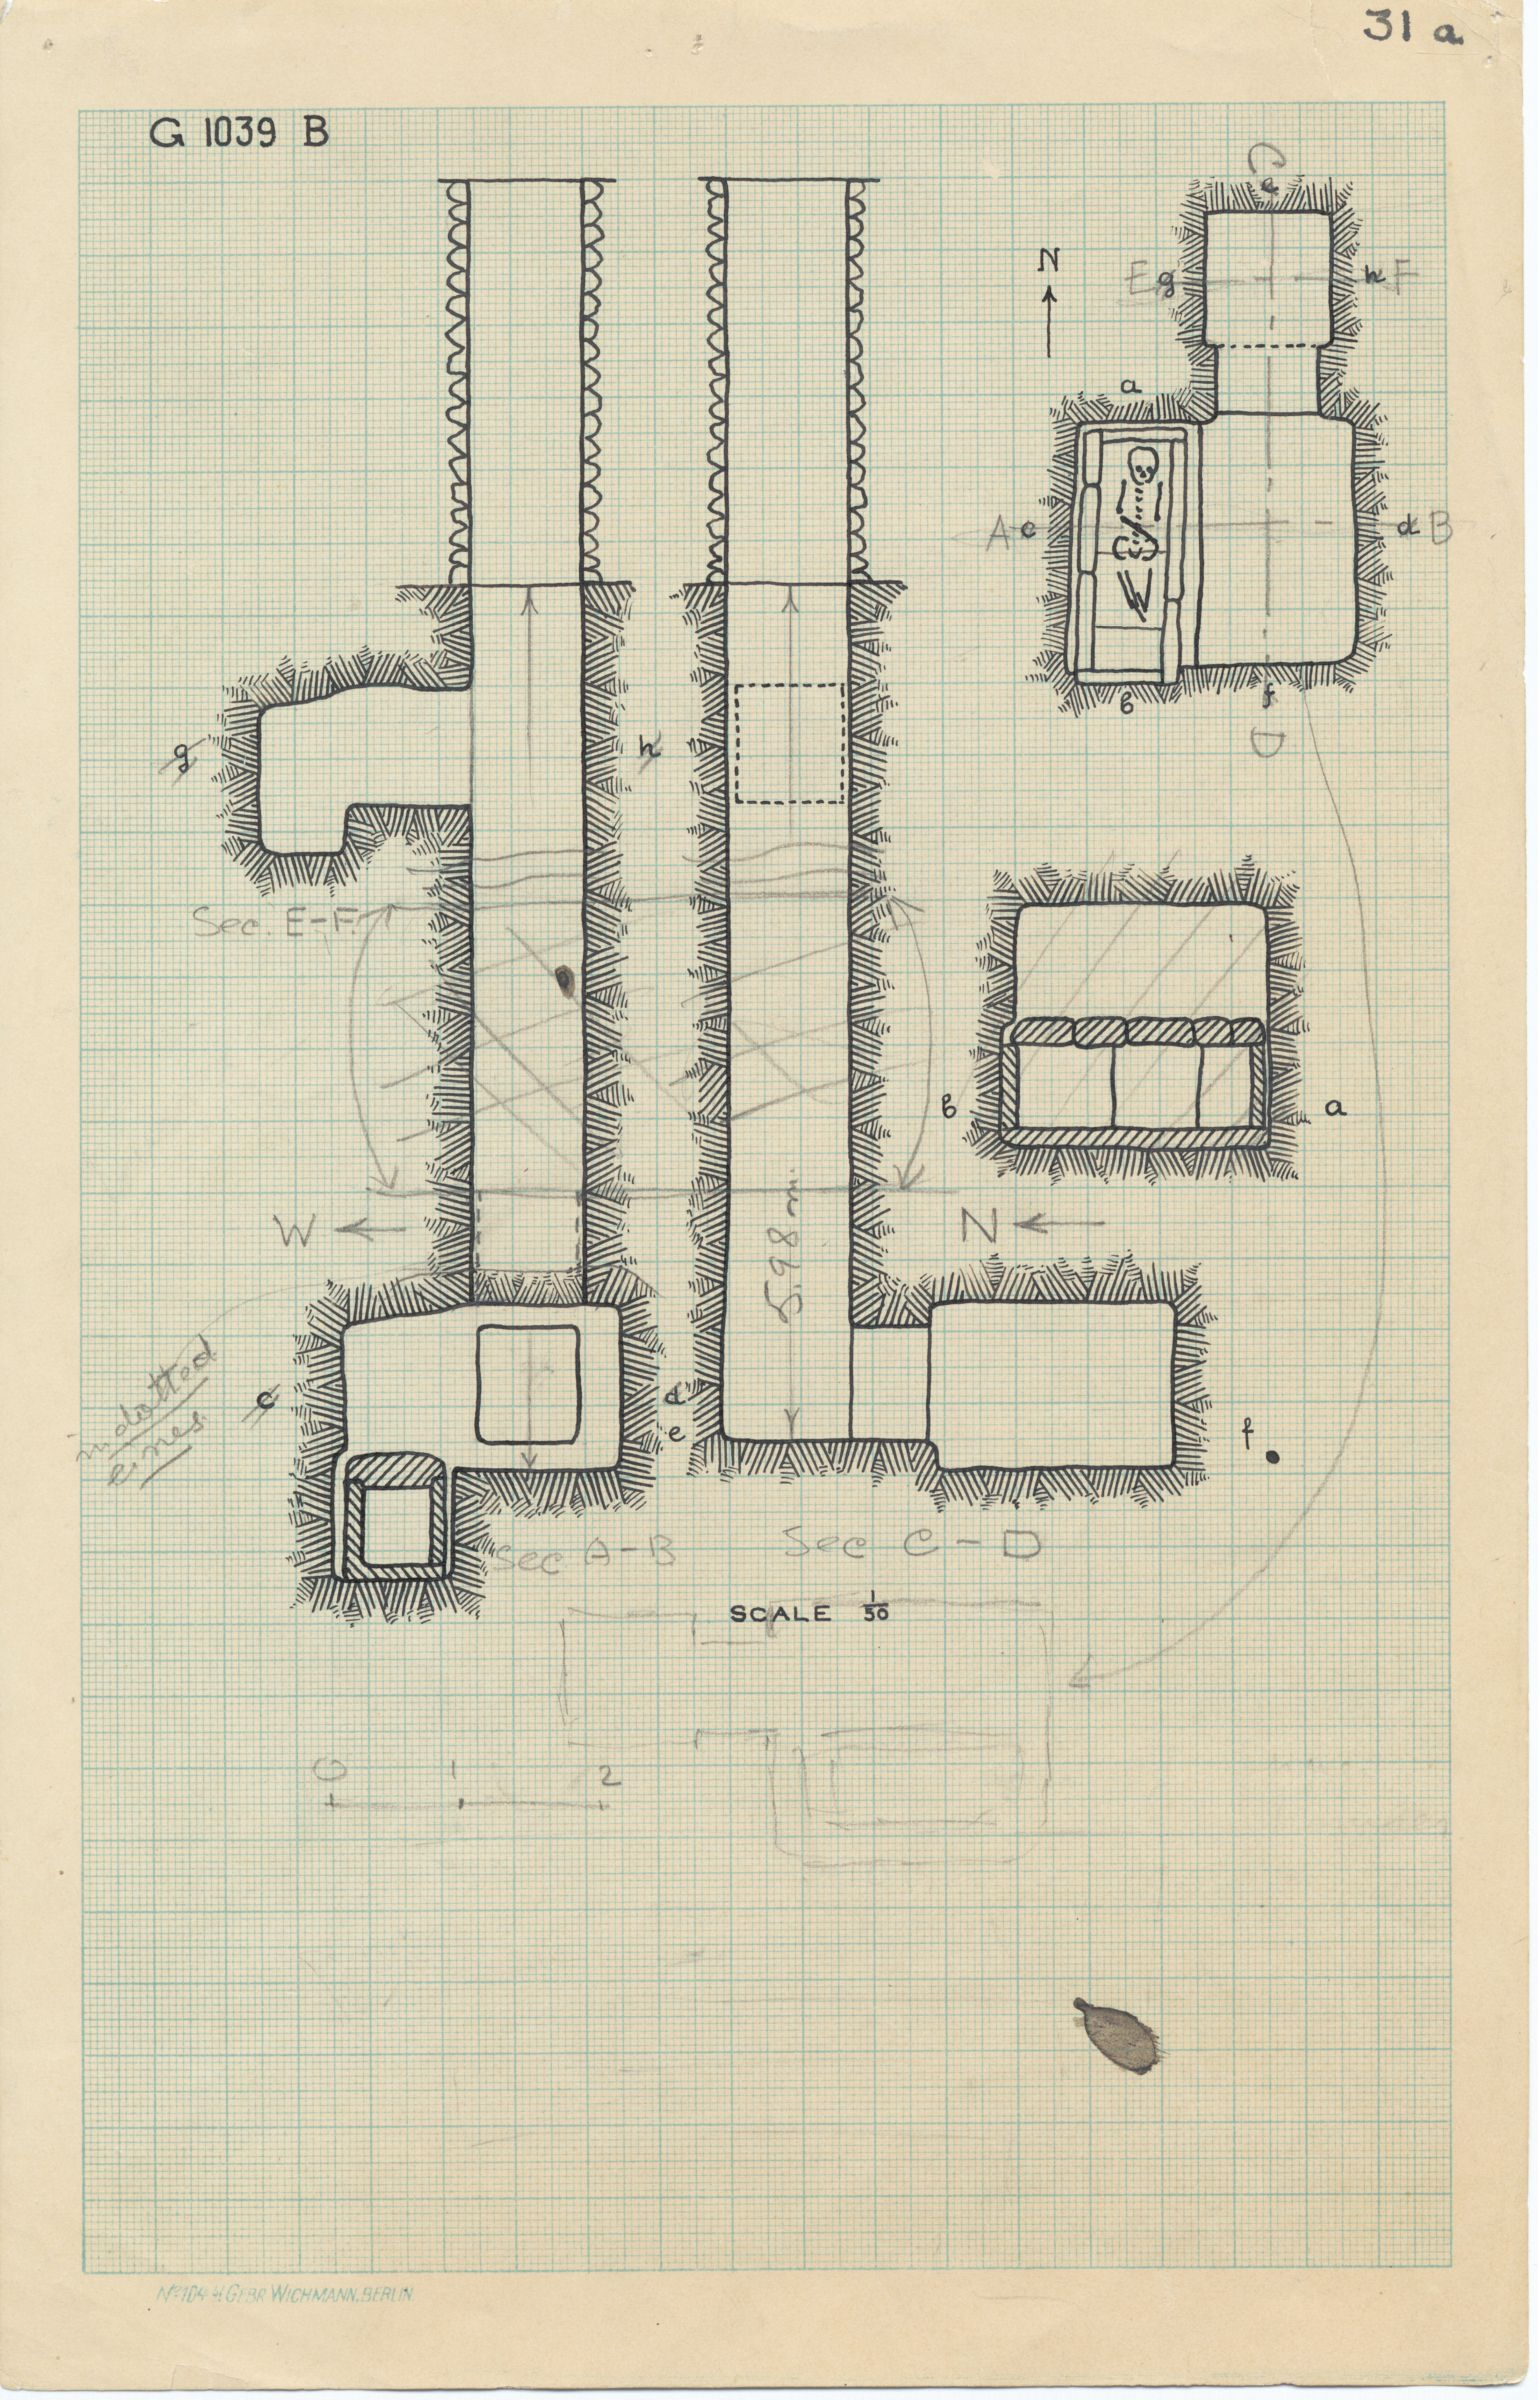 Maps and plans: G 1039, Shaft B